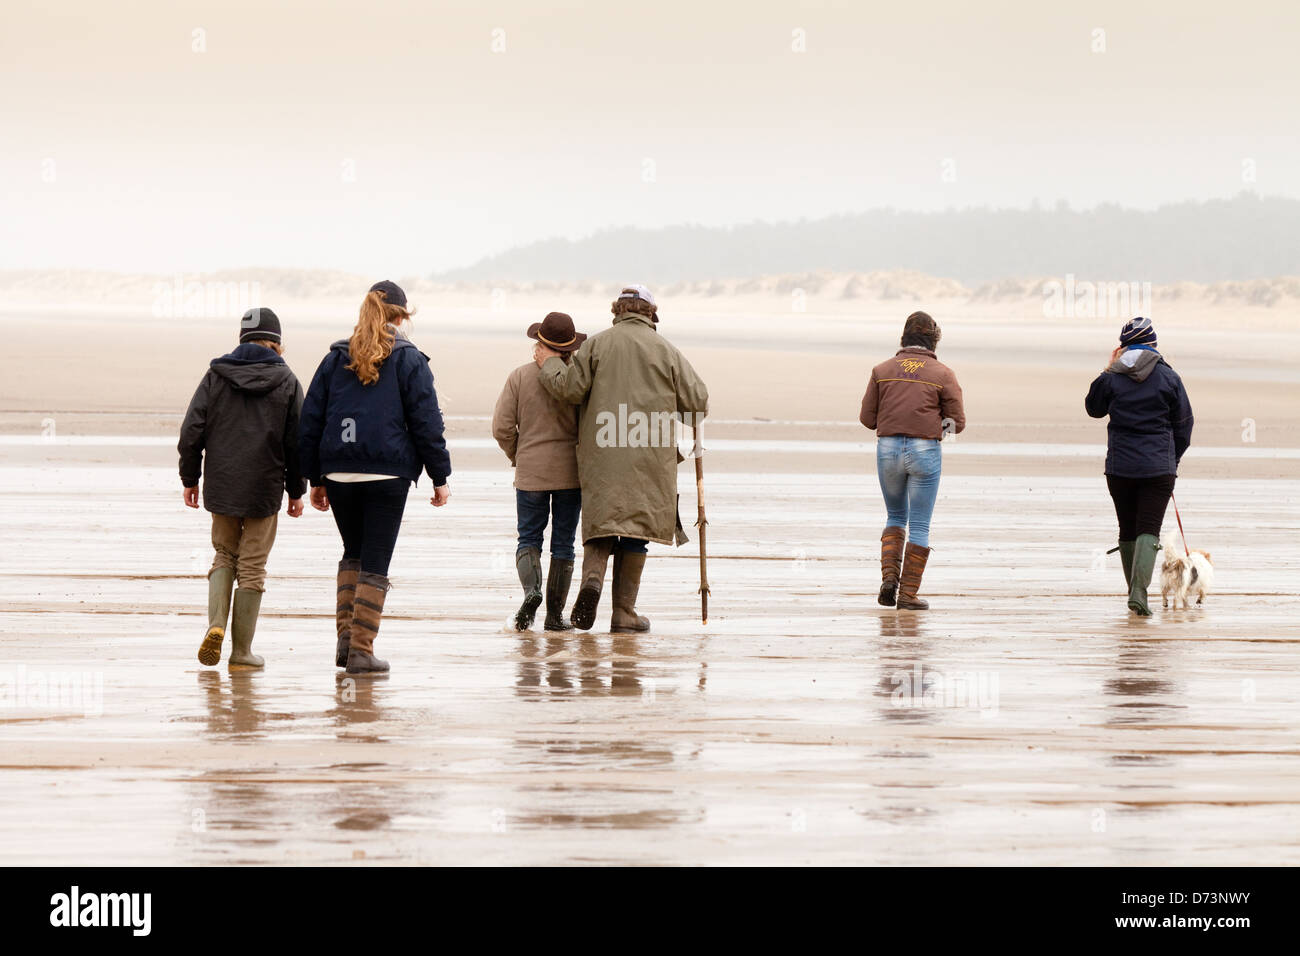 A group of people walking on the beach, seen from the rear, Holkham Beach, North Norfolk, UK - Stock Image